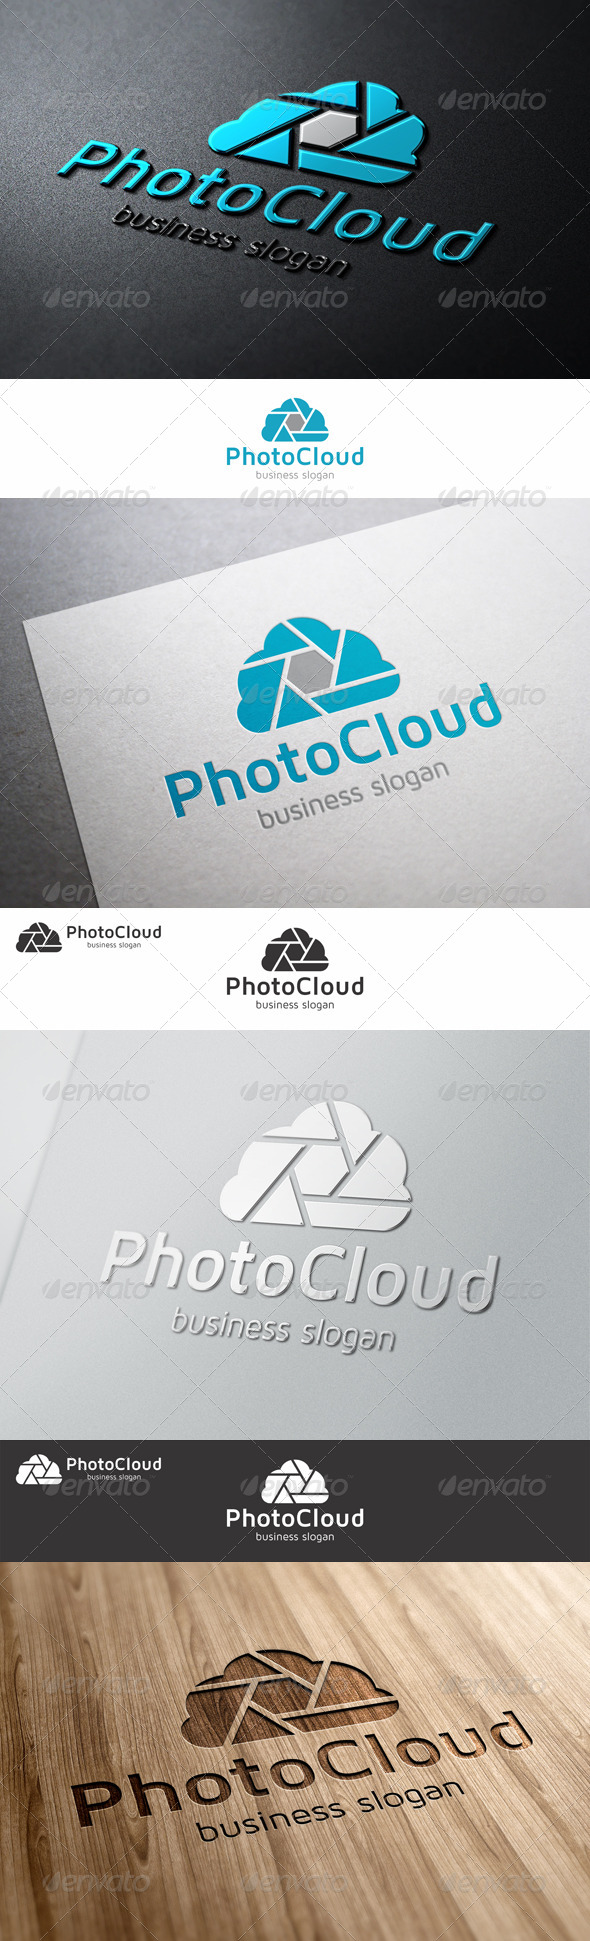 Photo Cloud Logo Template - Symbols Logo Templates